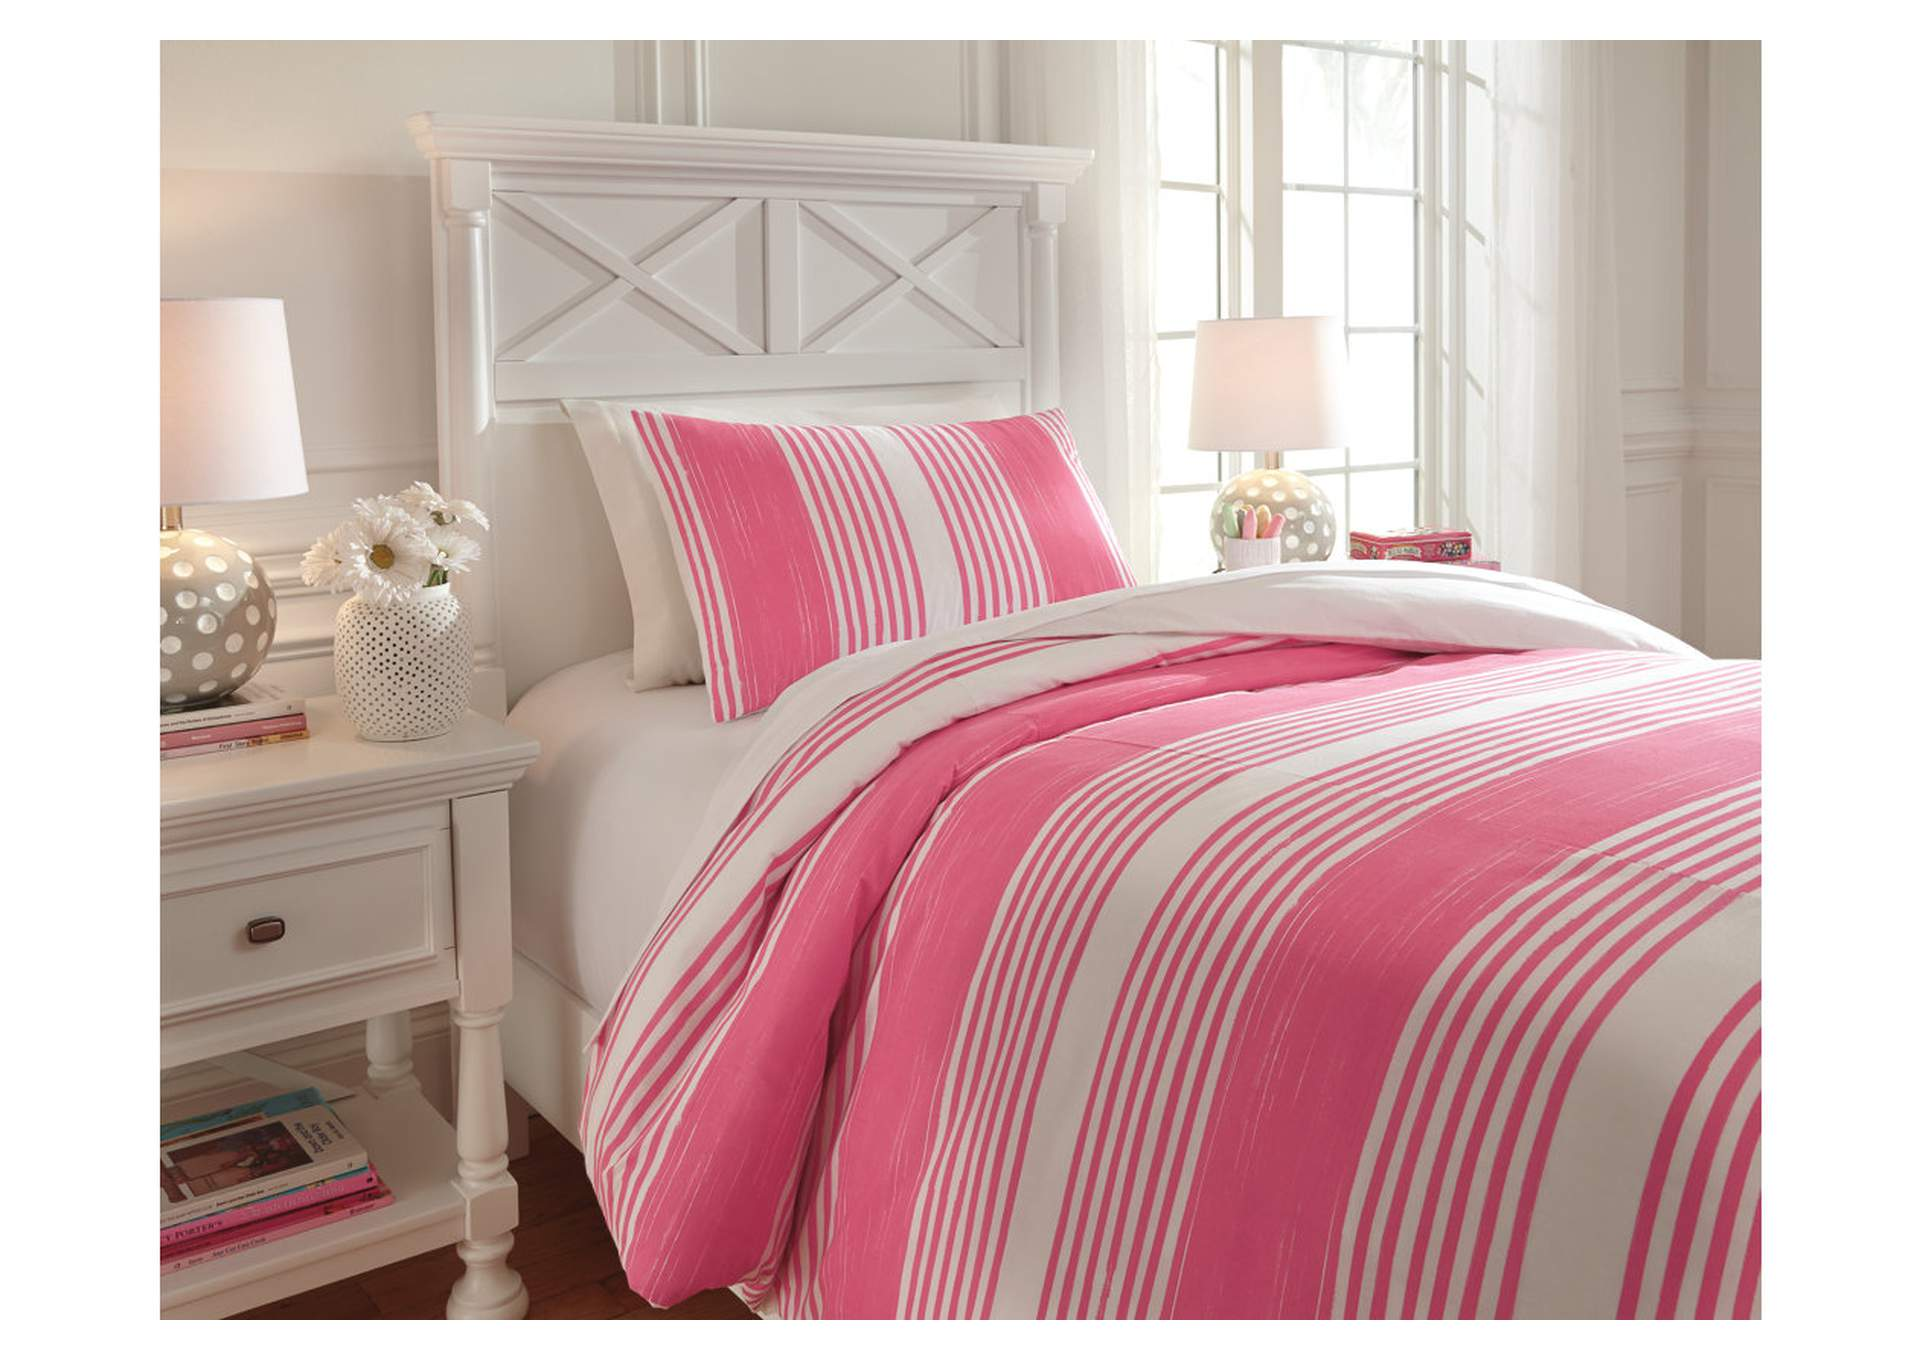 Taries Pink Twin Duvet Cover Set,Signature Design By Ashley